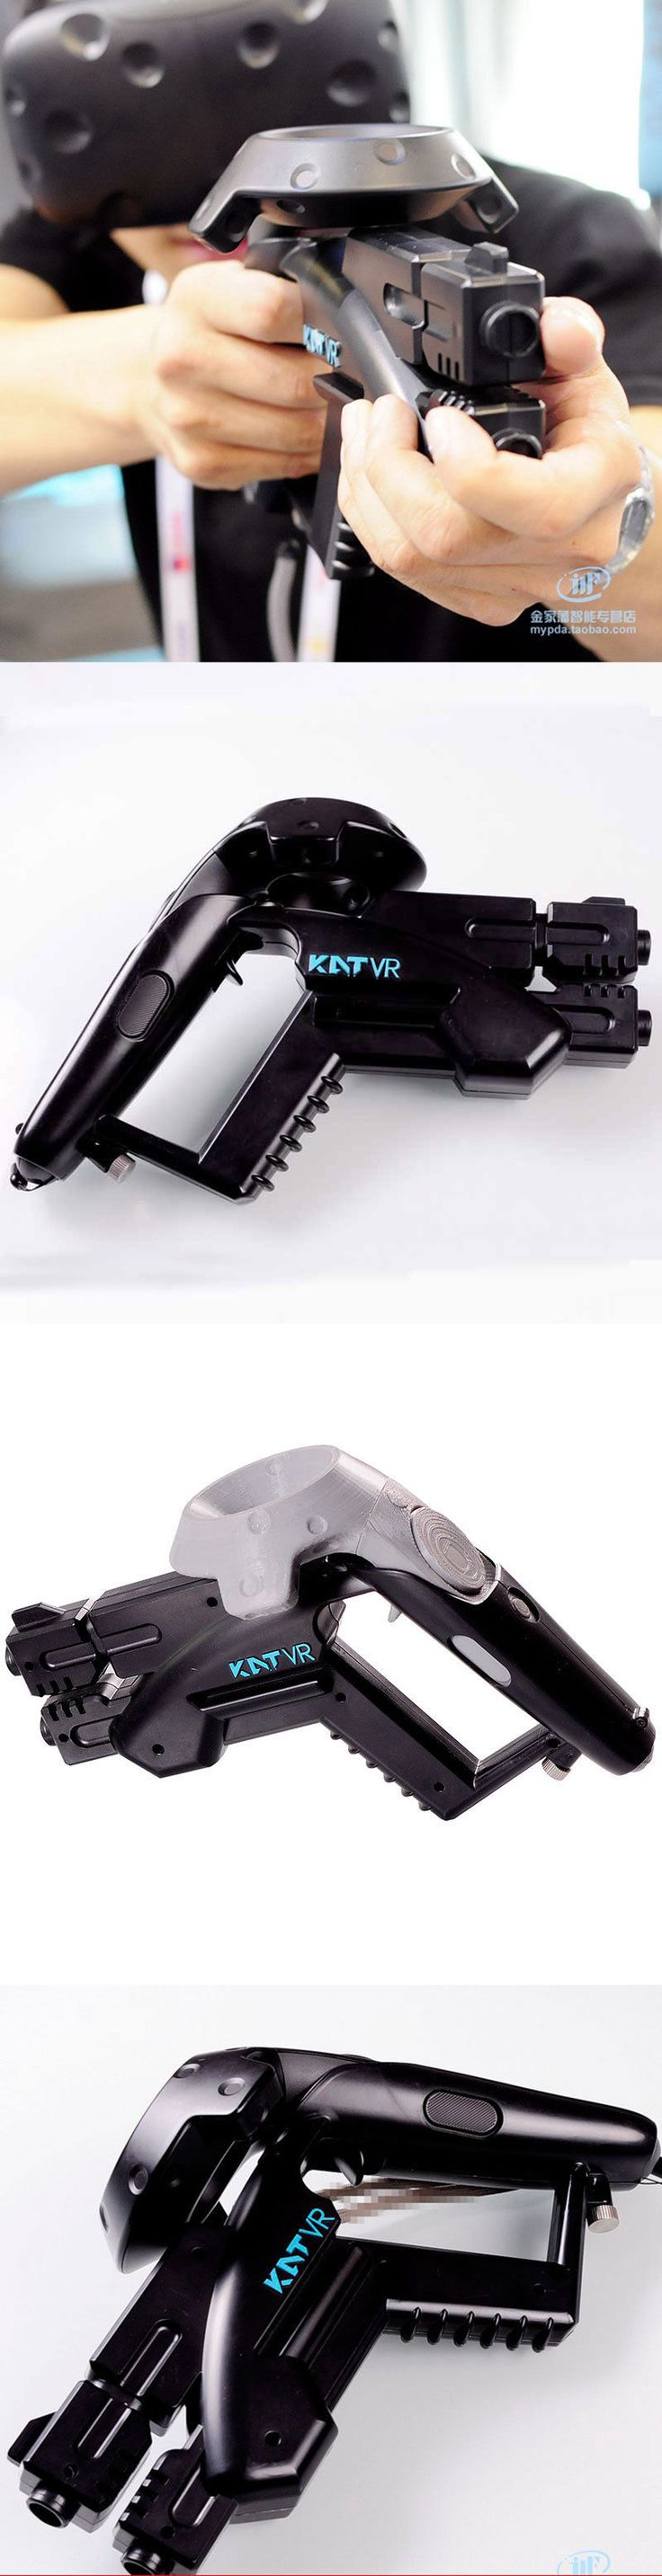 Other Virtual Reality Accs: 2017 New Small Pistol Gun Vr Handgun Shooting Game For Htc Vive Glasses Vr Shop -> BUY IT NOW ONLY: $46.99 on eBay!